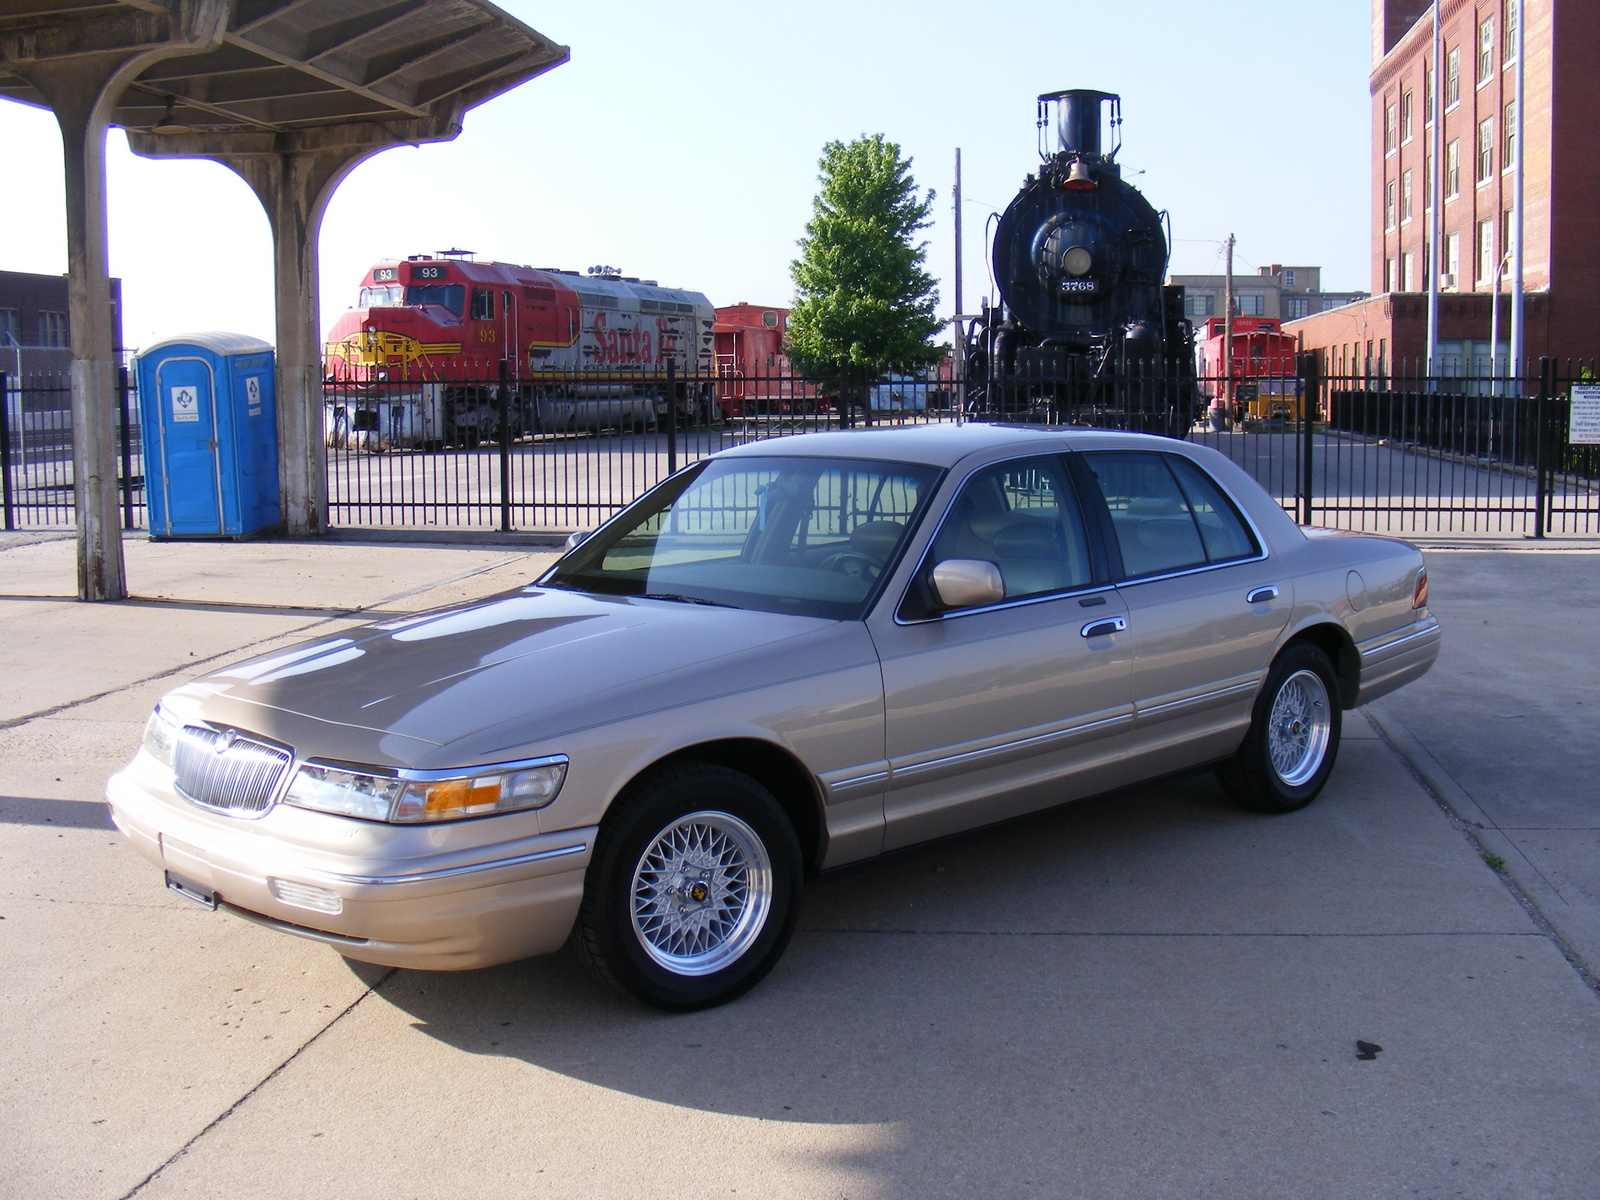 1997 Mercury Grand Marquis 4 Dr LS Sedan picture, exterior